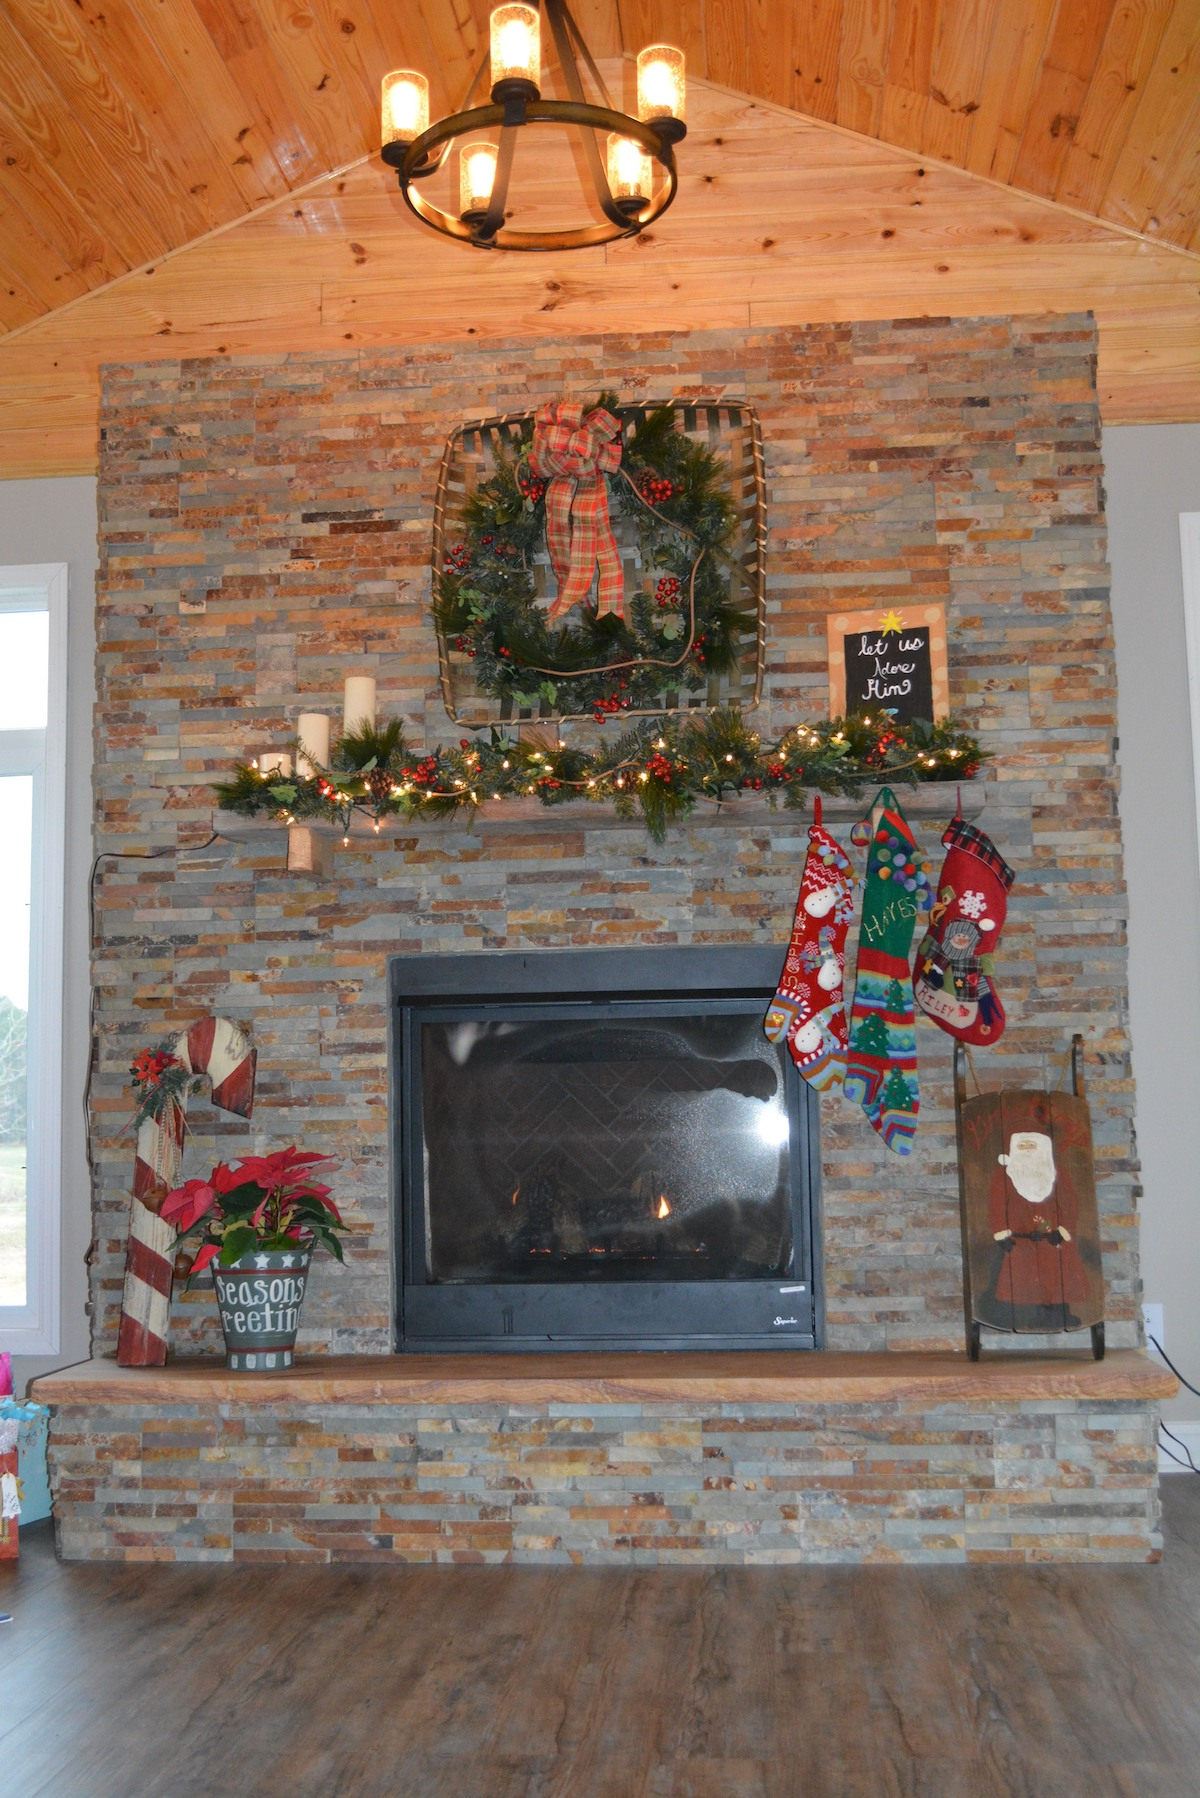 stone fireplace with raised hearth decorated for Christmas